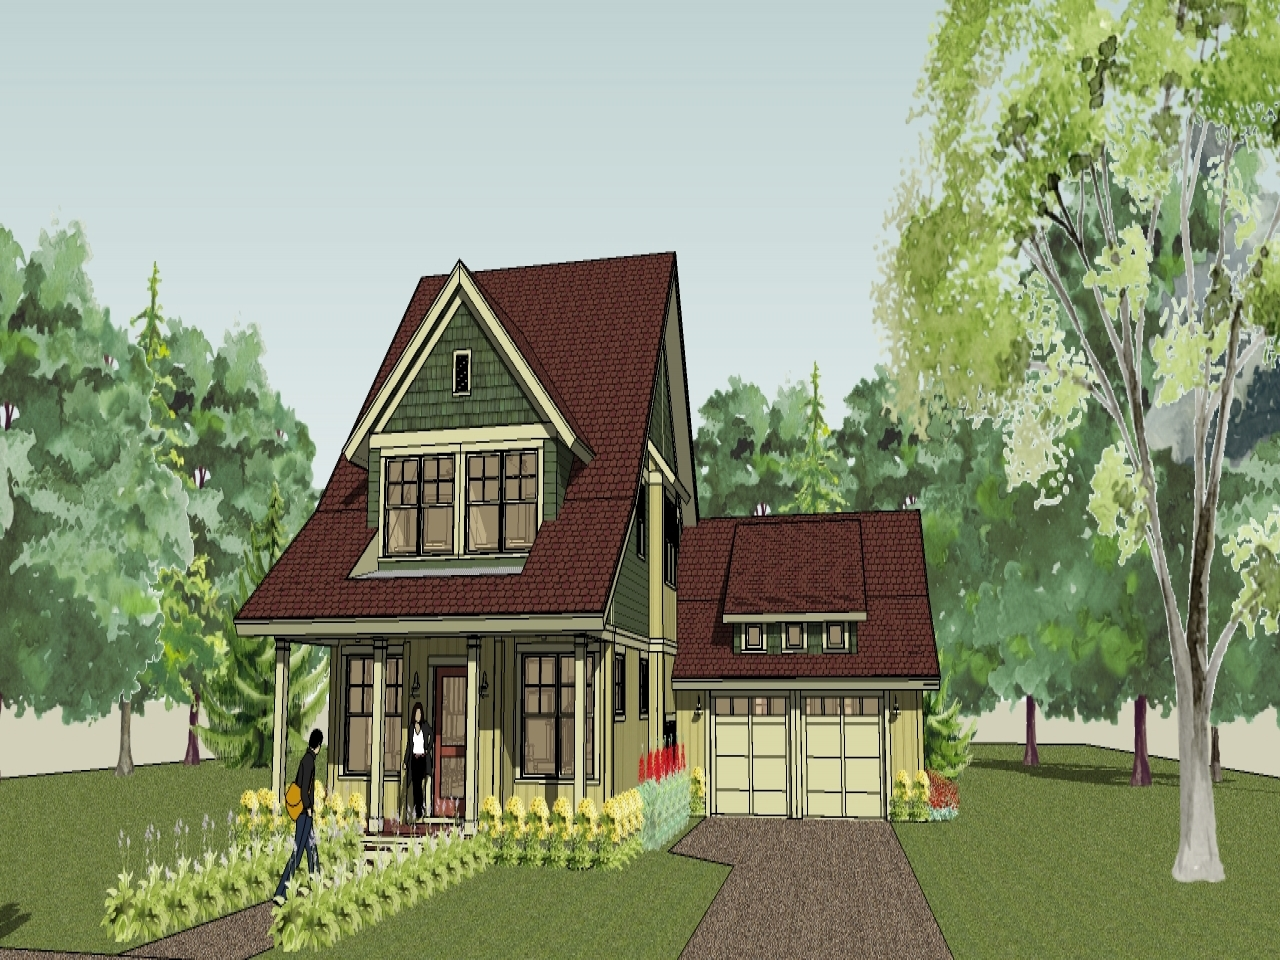 country cottage house plans bungalow cottage house plans On country bungalow house plans